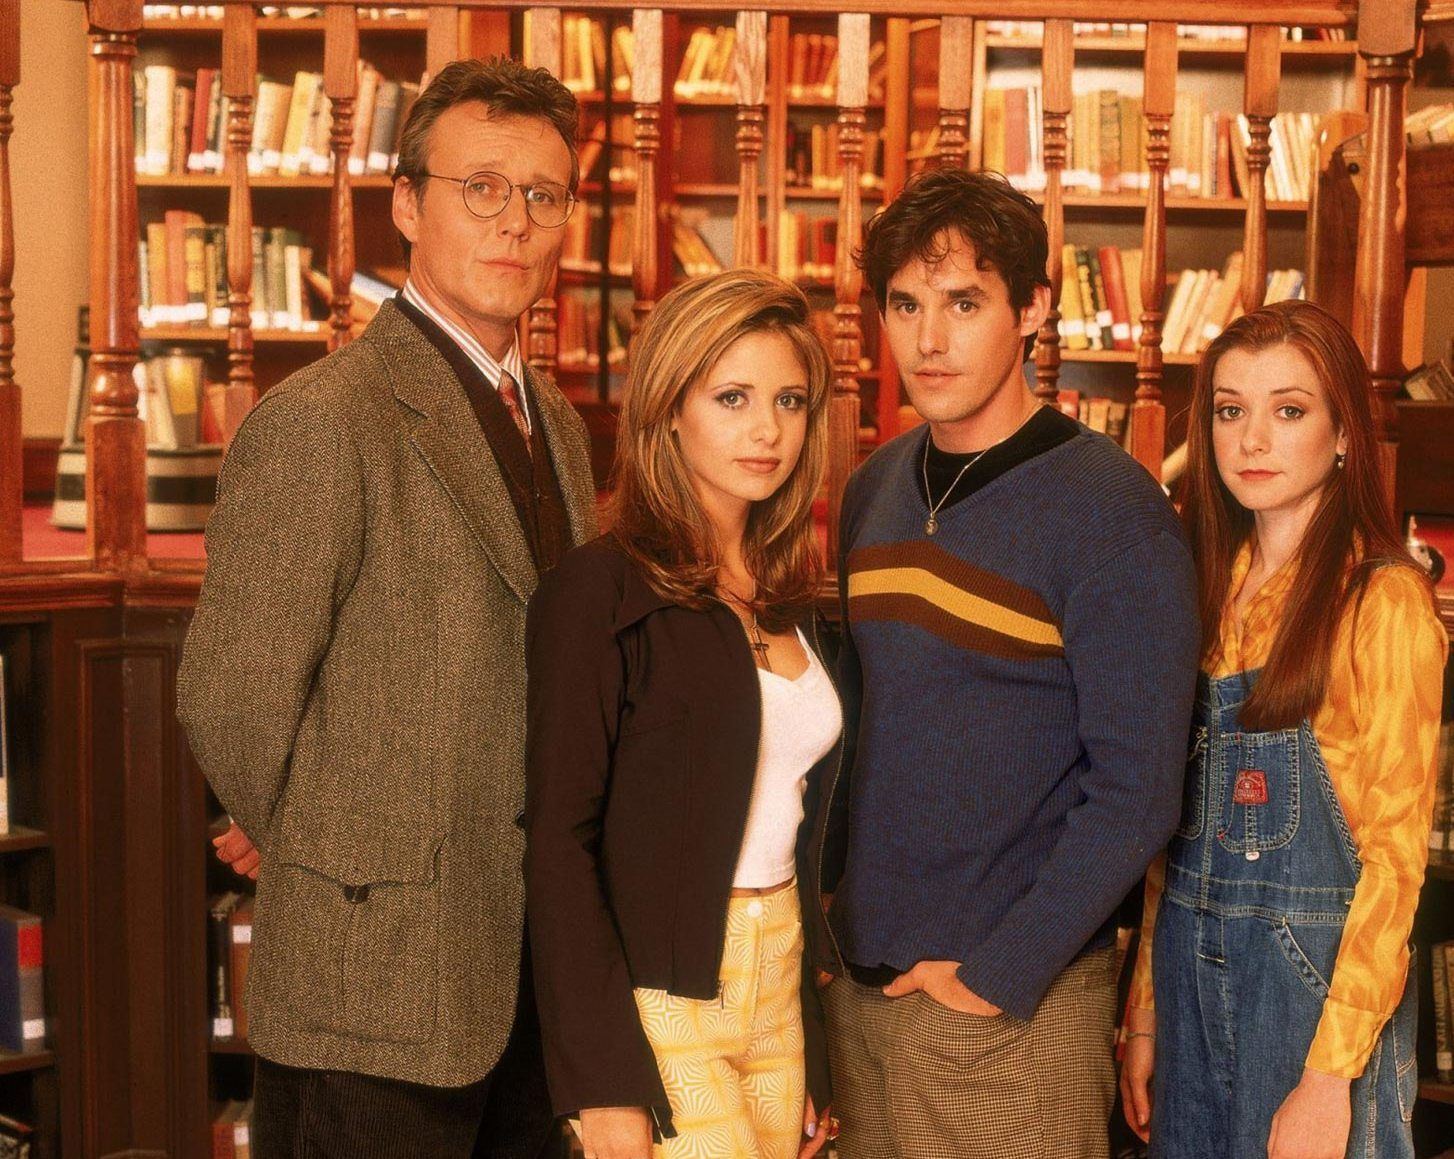 Buffy way back when.